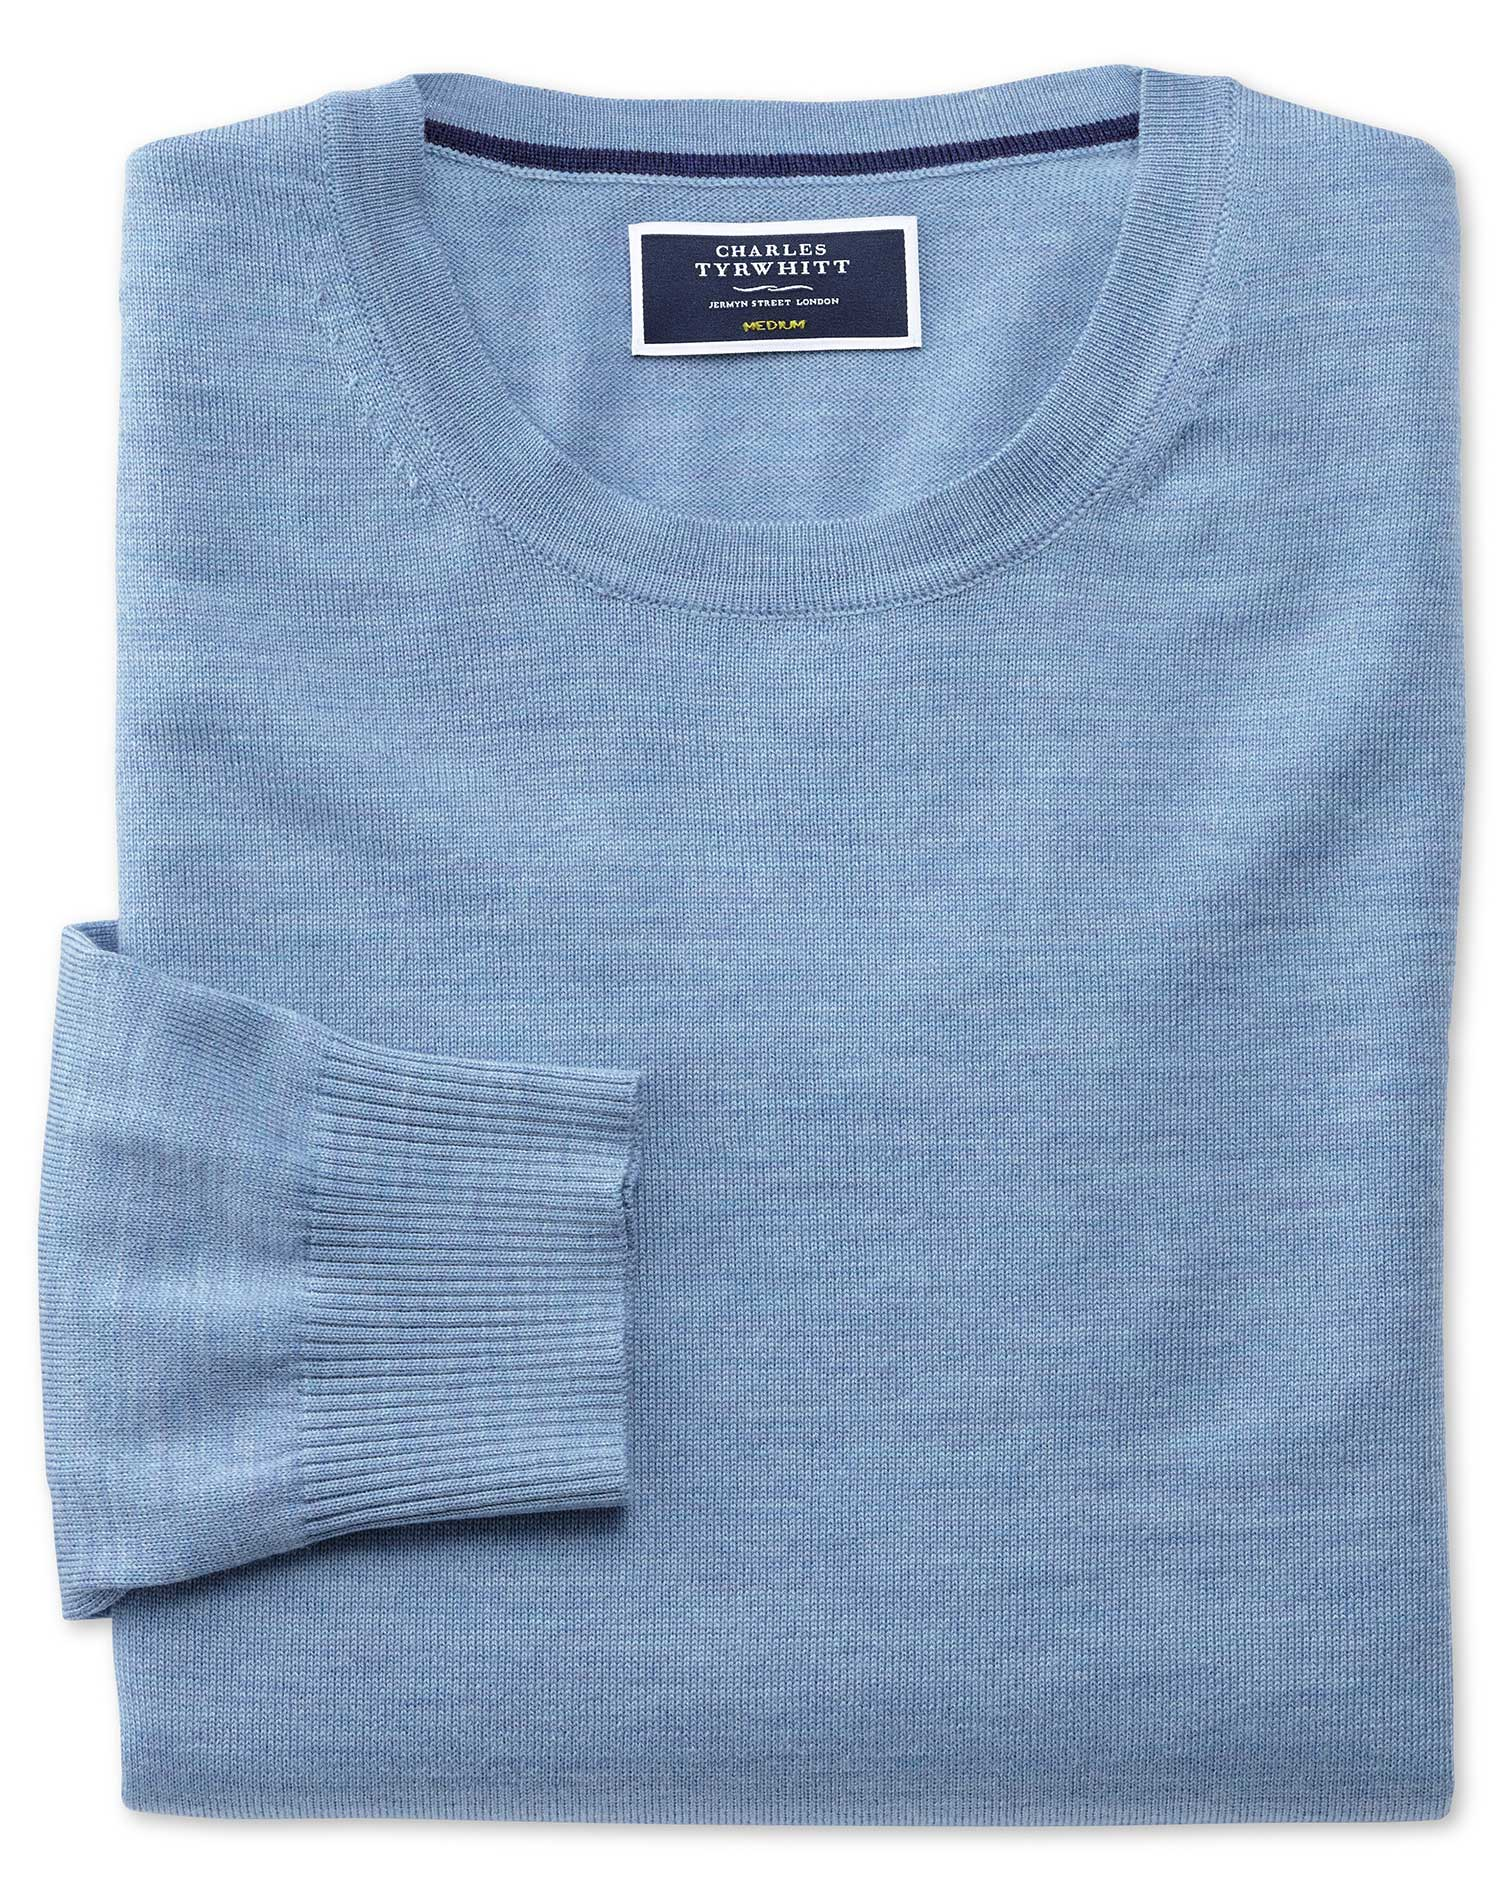 Sky Merino Wool Crew Neck Jumper Size Medium by Charles Tyrwhitt from Charles Tyrwhitt